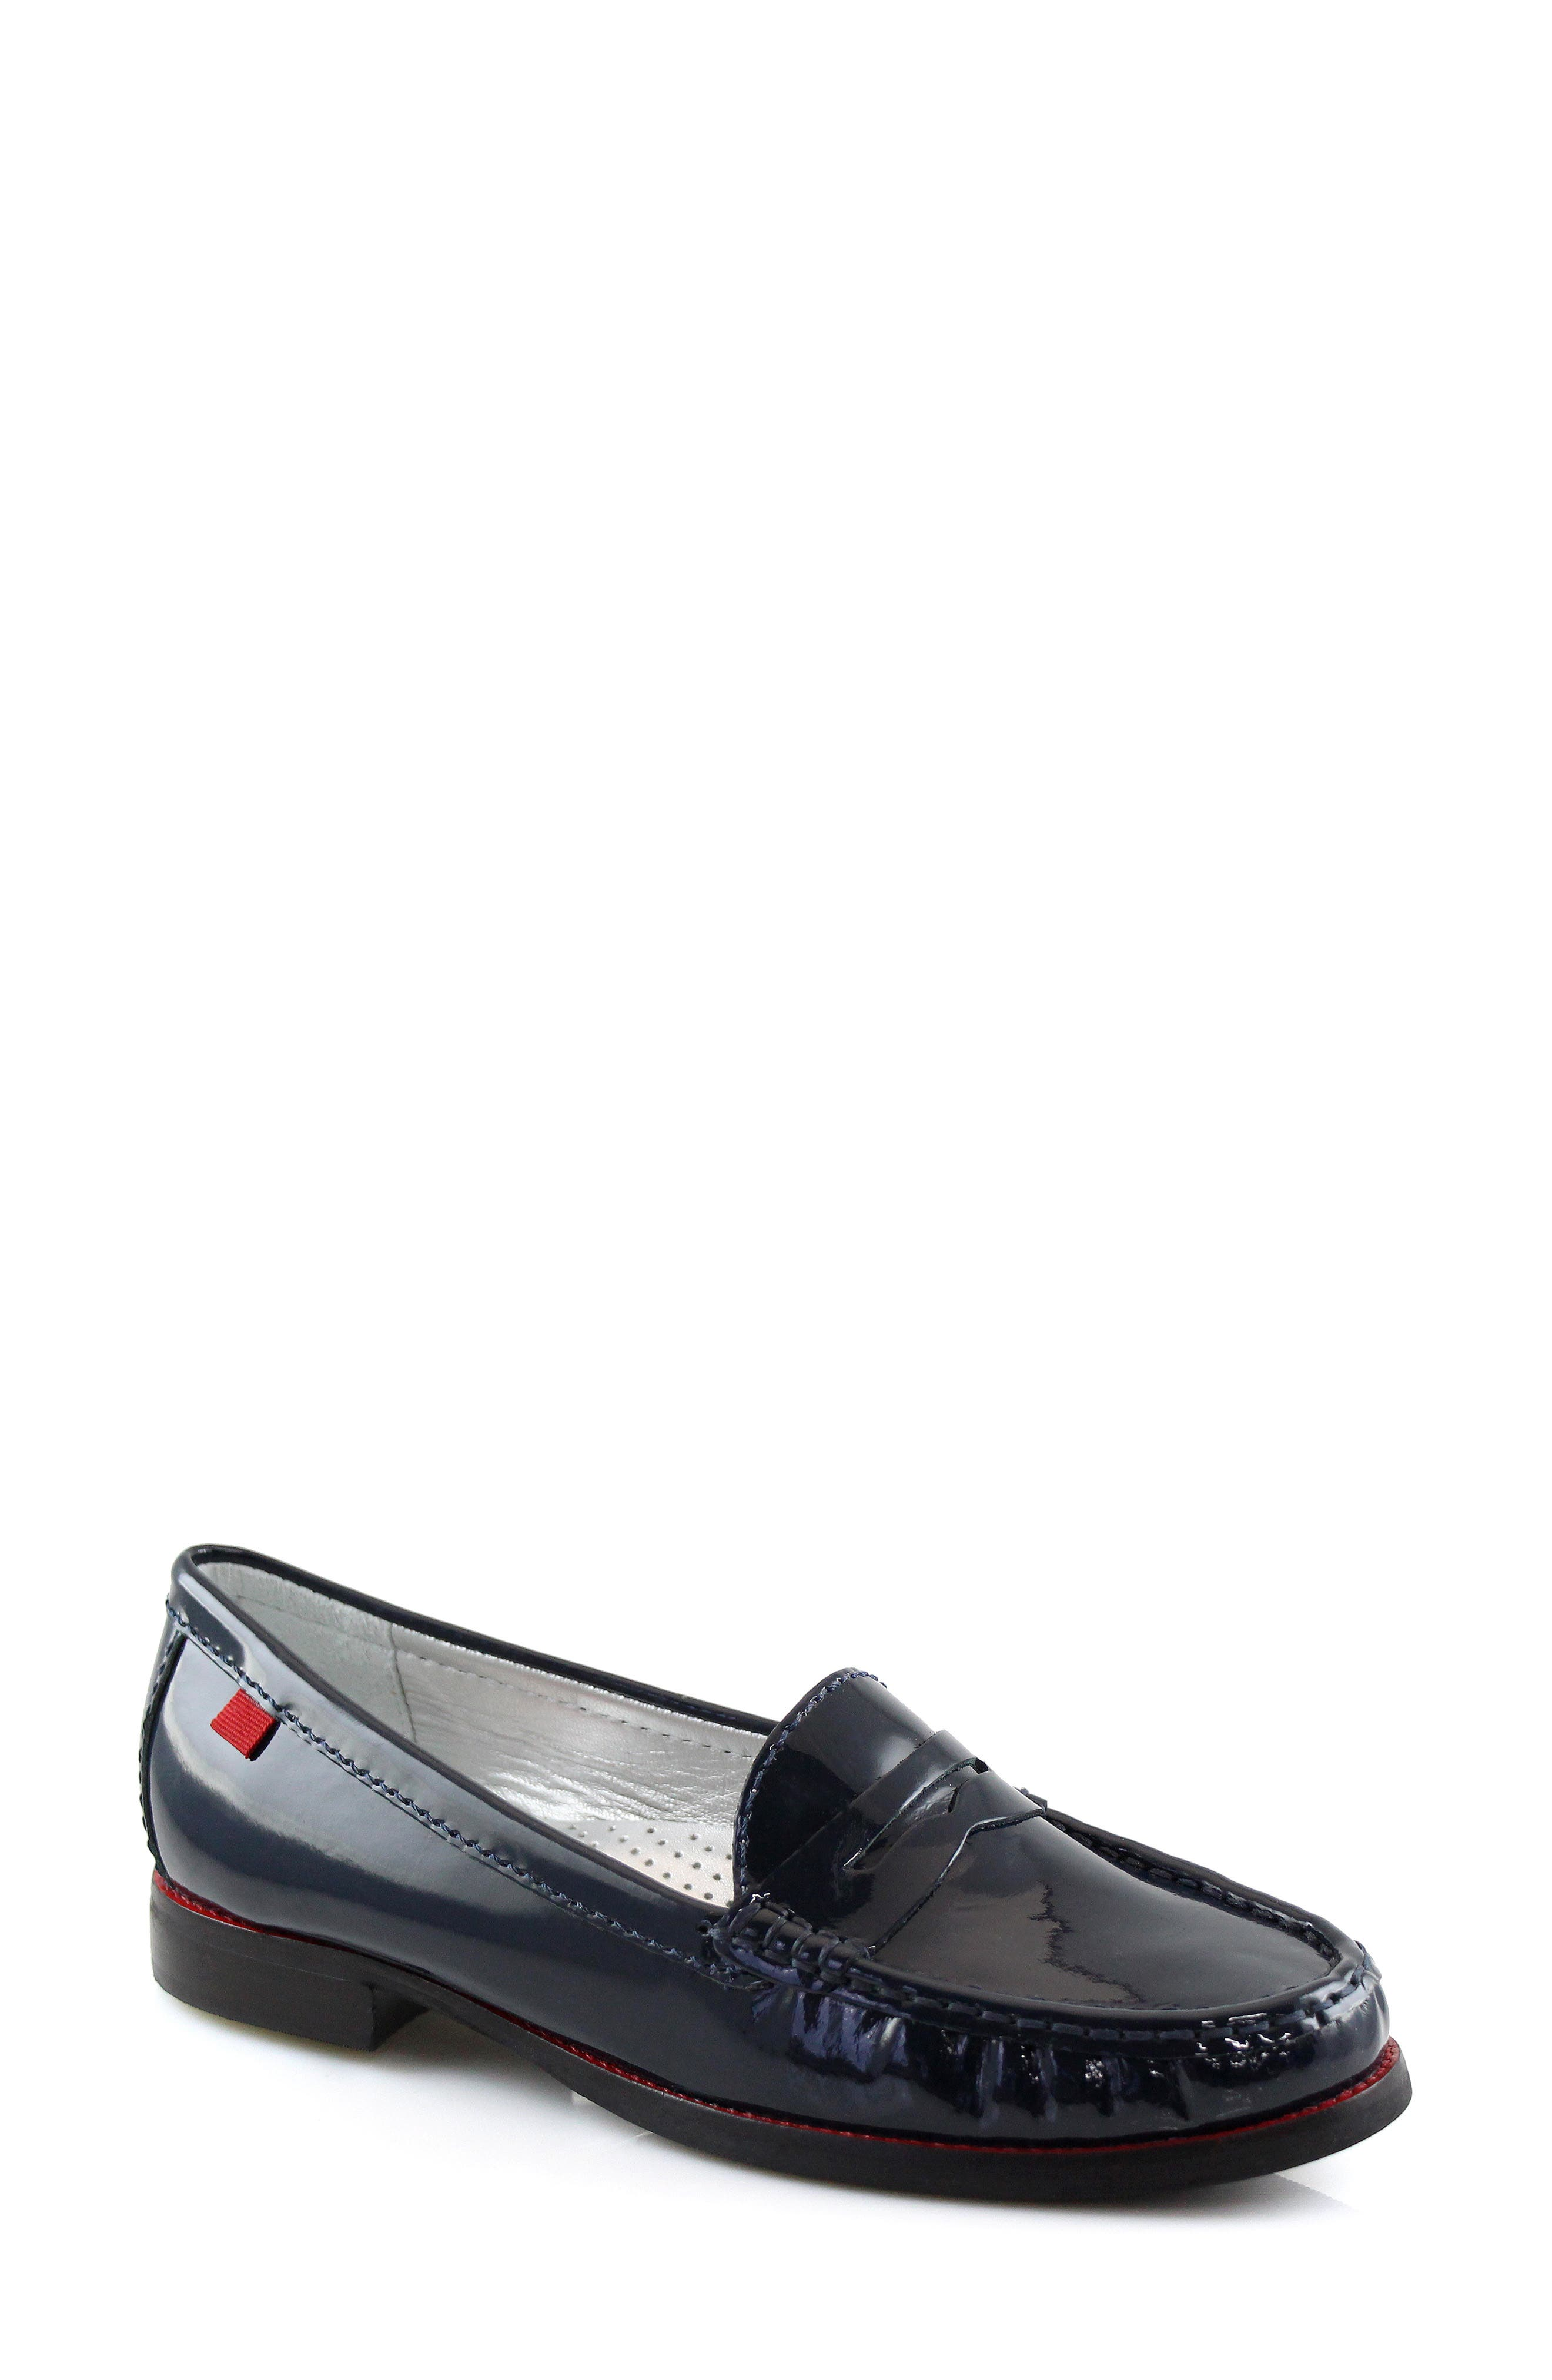 MARC JOSEPH NEW YORK, East Village Loafer, Main thumbnail 1, color, 410